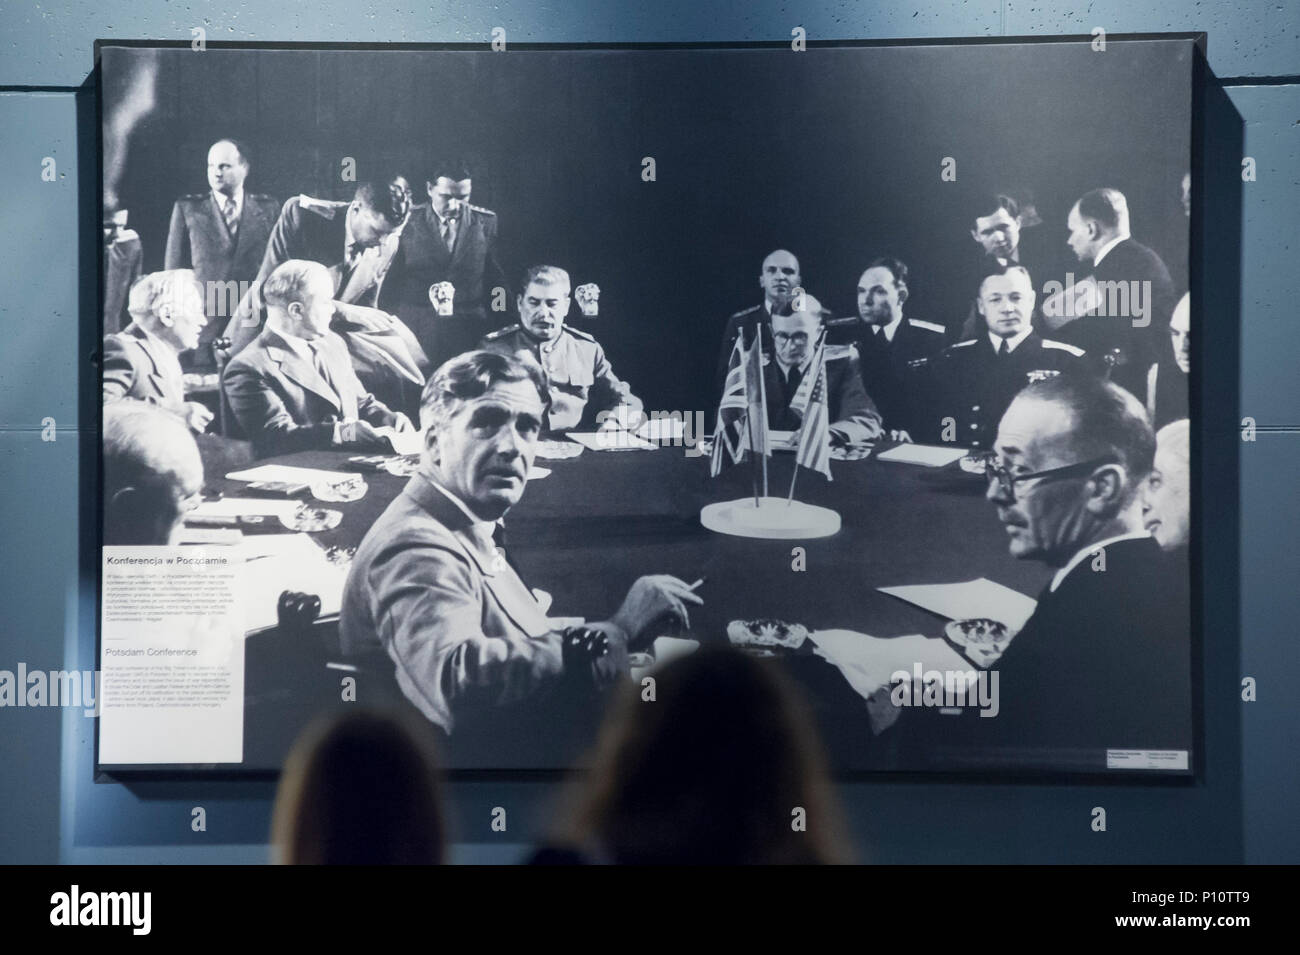 Potsdam Conference in 1945 as a part of exhibion in Museum of the Second World War in Gdansk, Poland. January 28th 2017 © Wojciech Strozyk / Alamy Sto - Stock Image